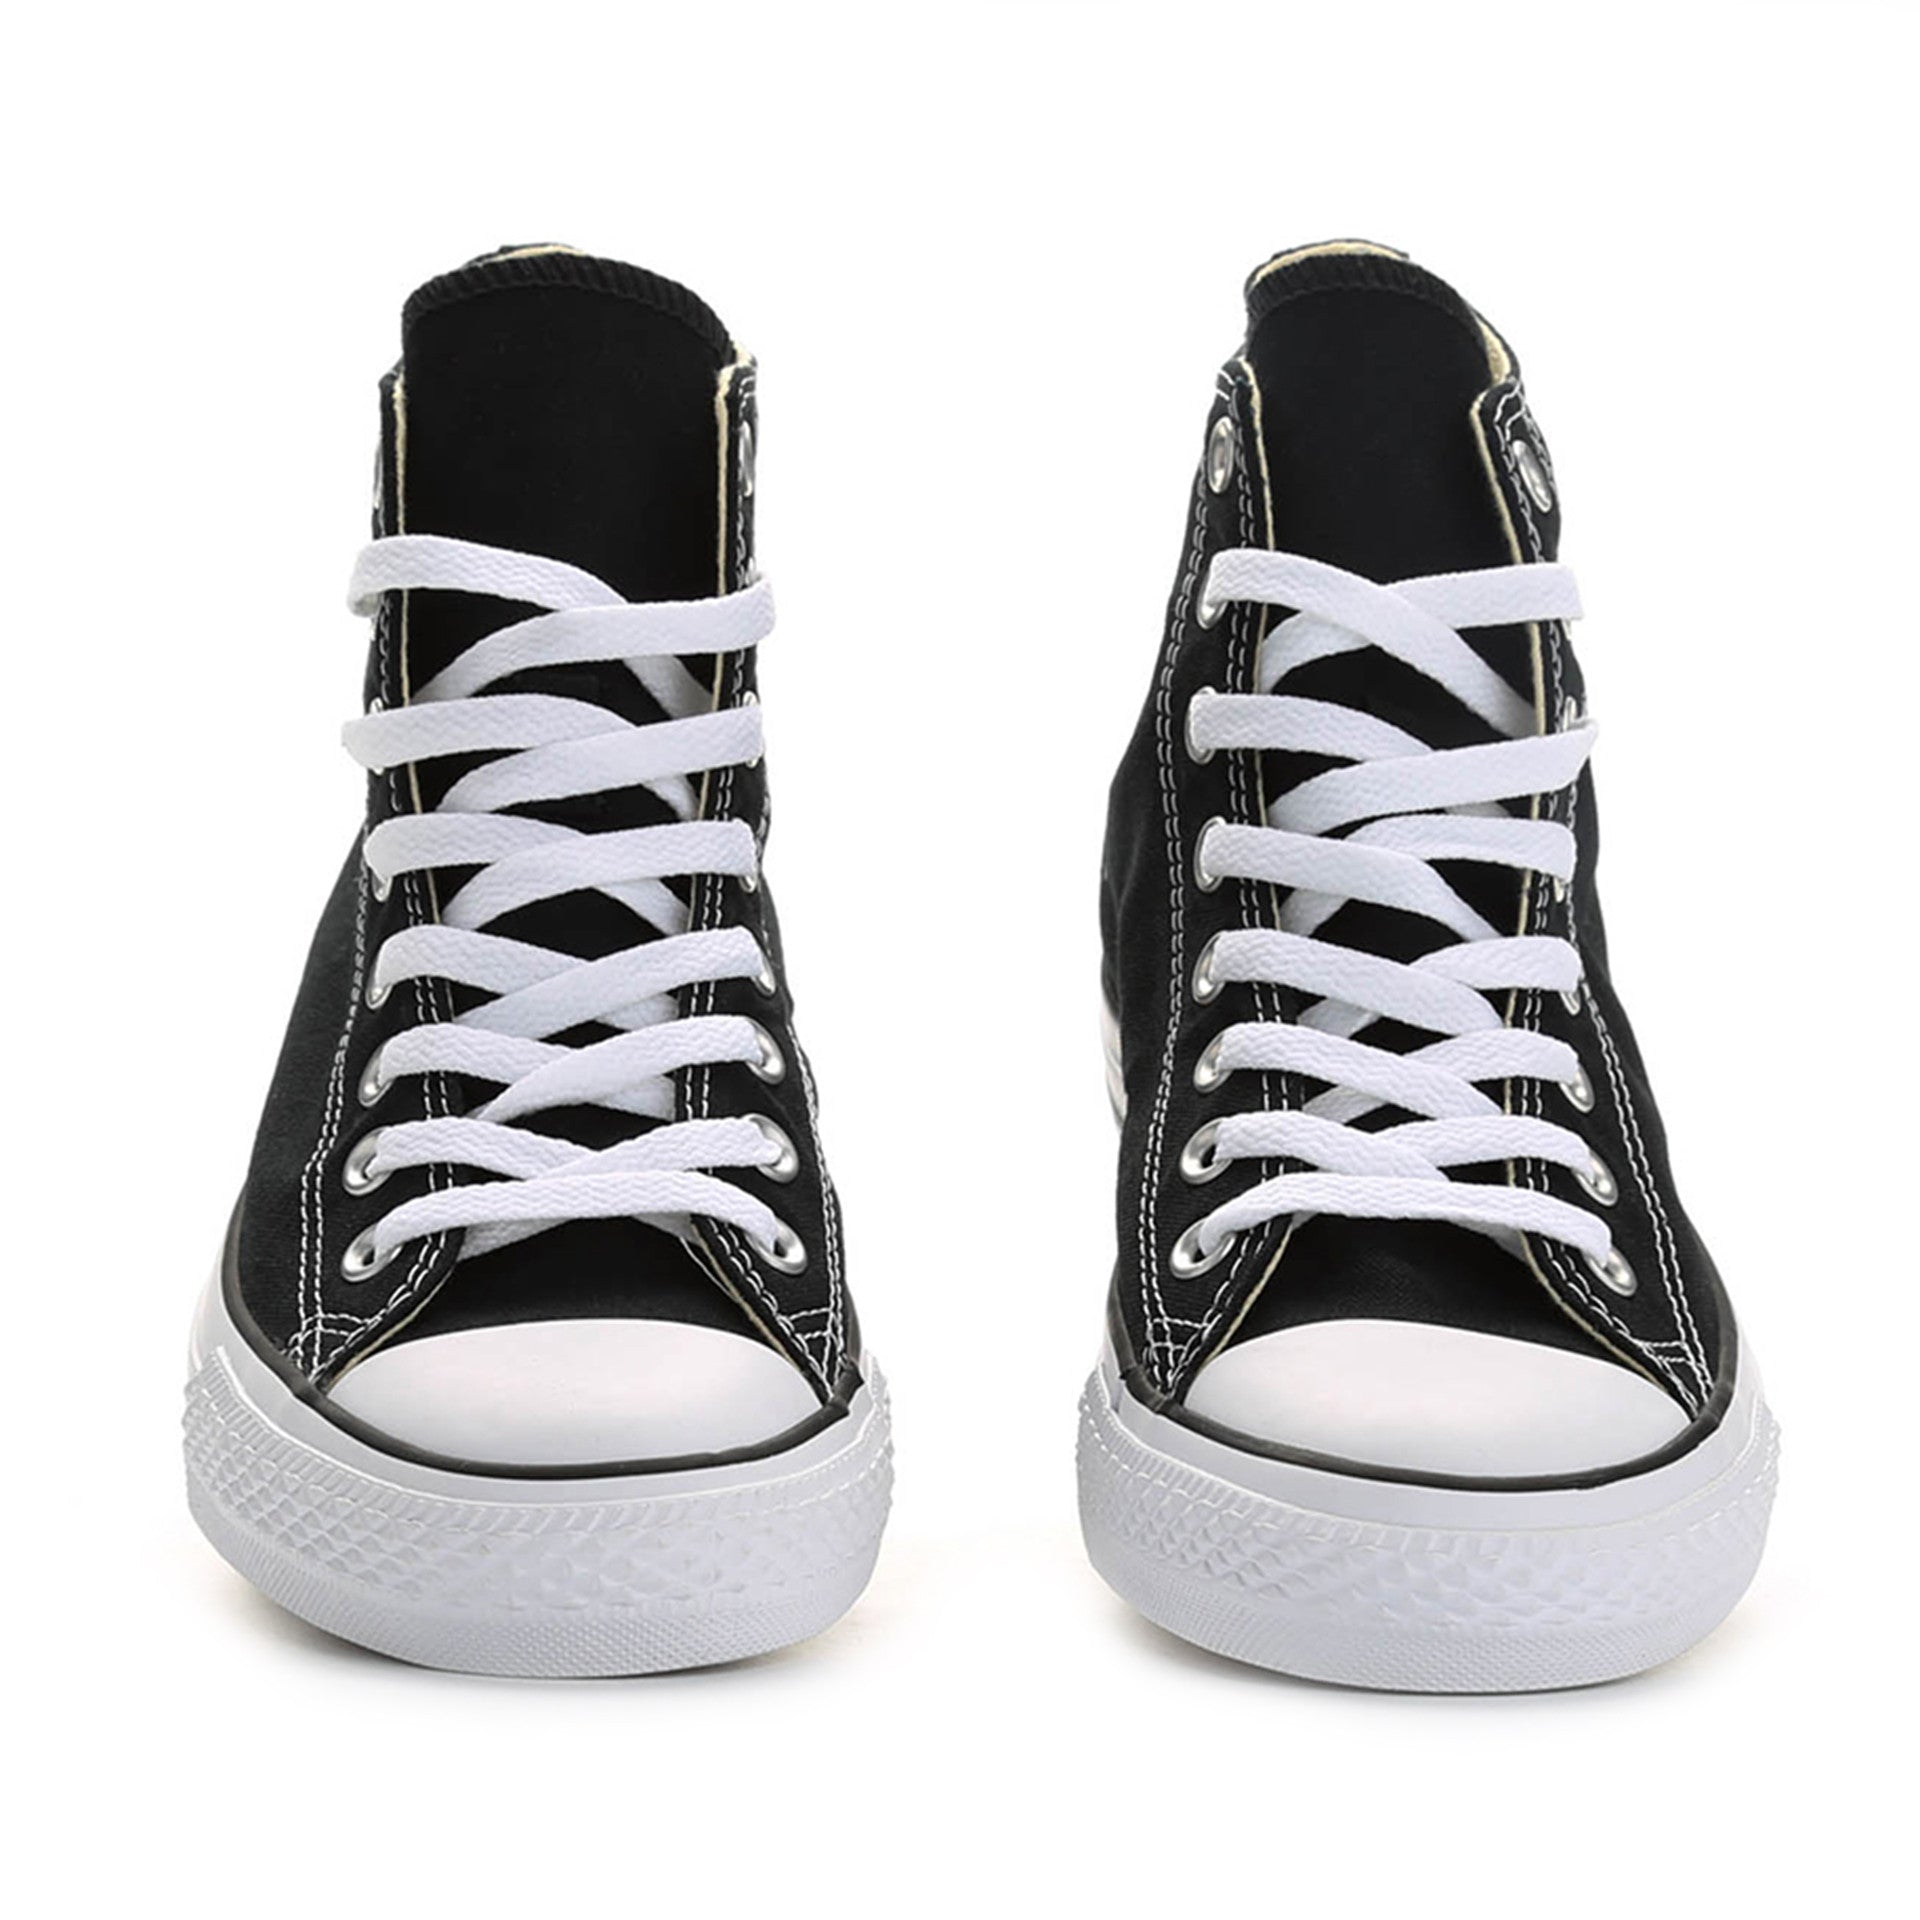 293bb8a6dacb chuck taylor high top black